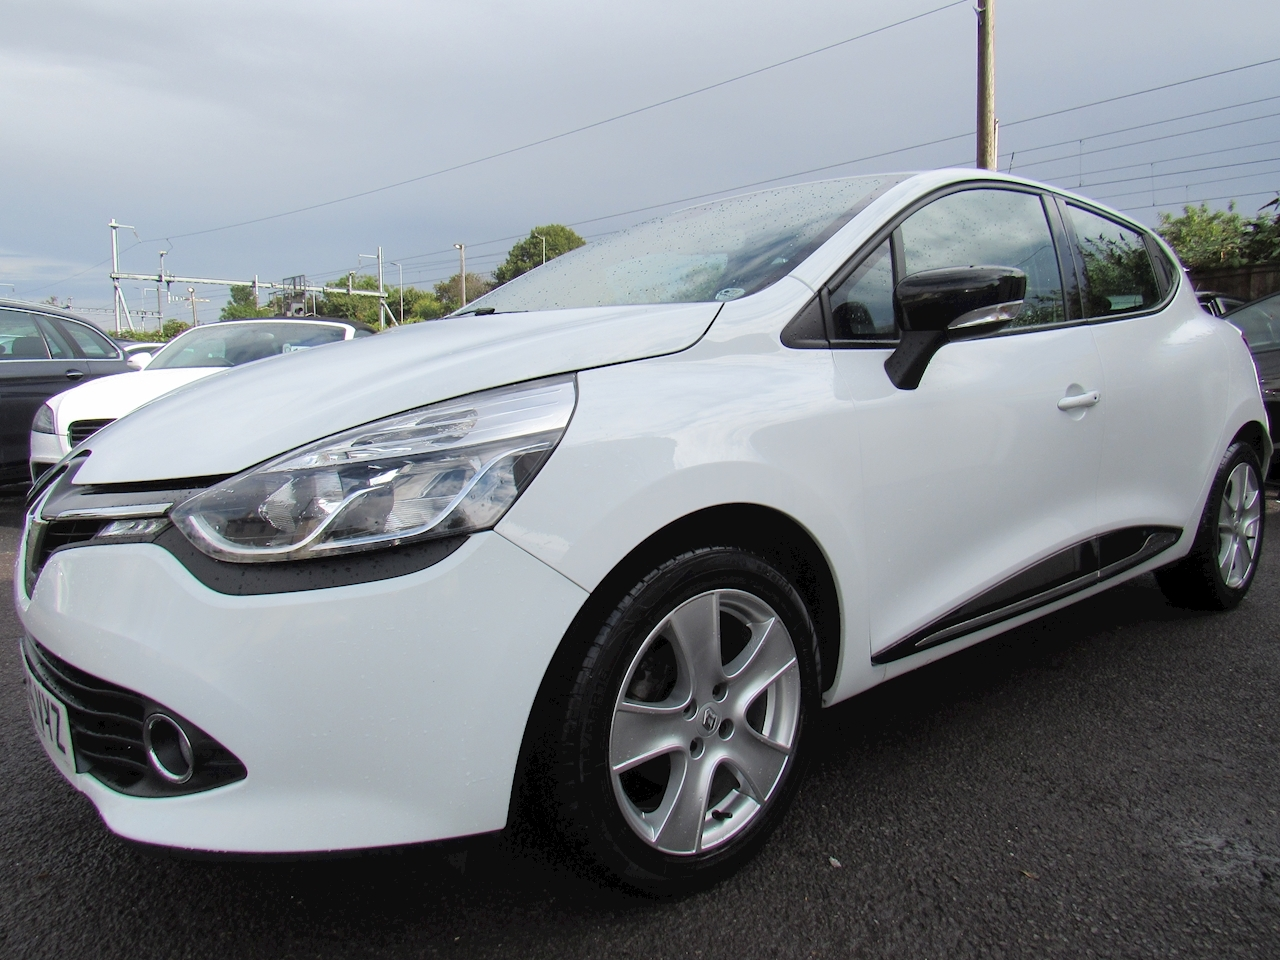 Renault Clio Dynamique MediaNav Hatchback 0.9 Manual Petrol